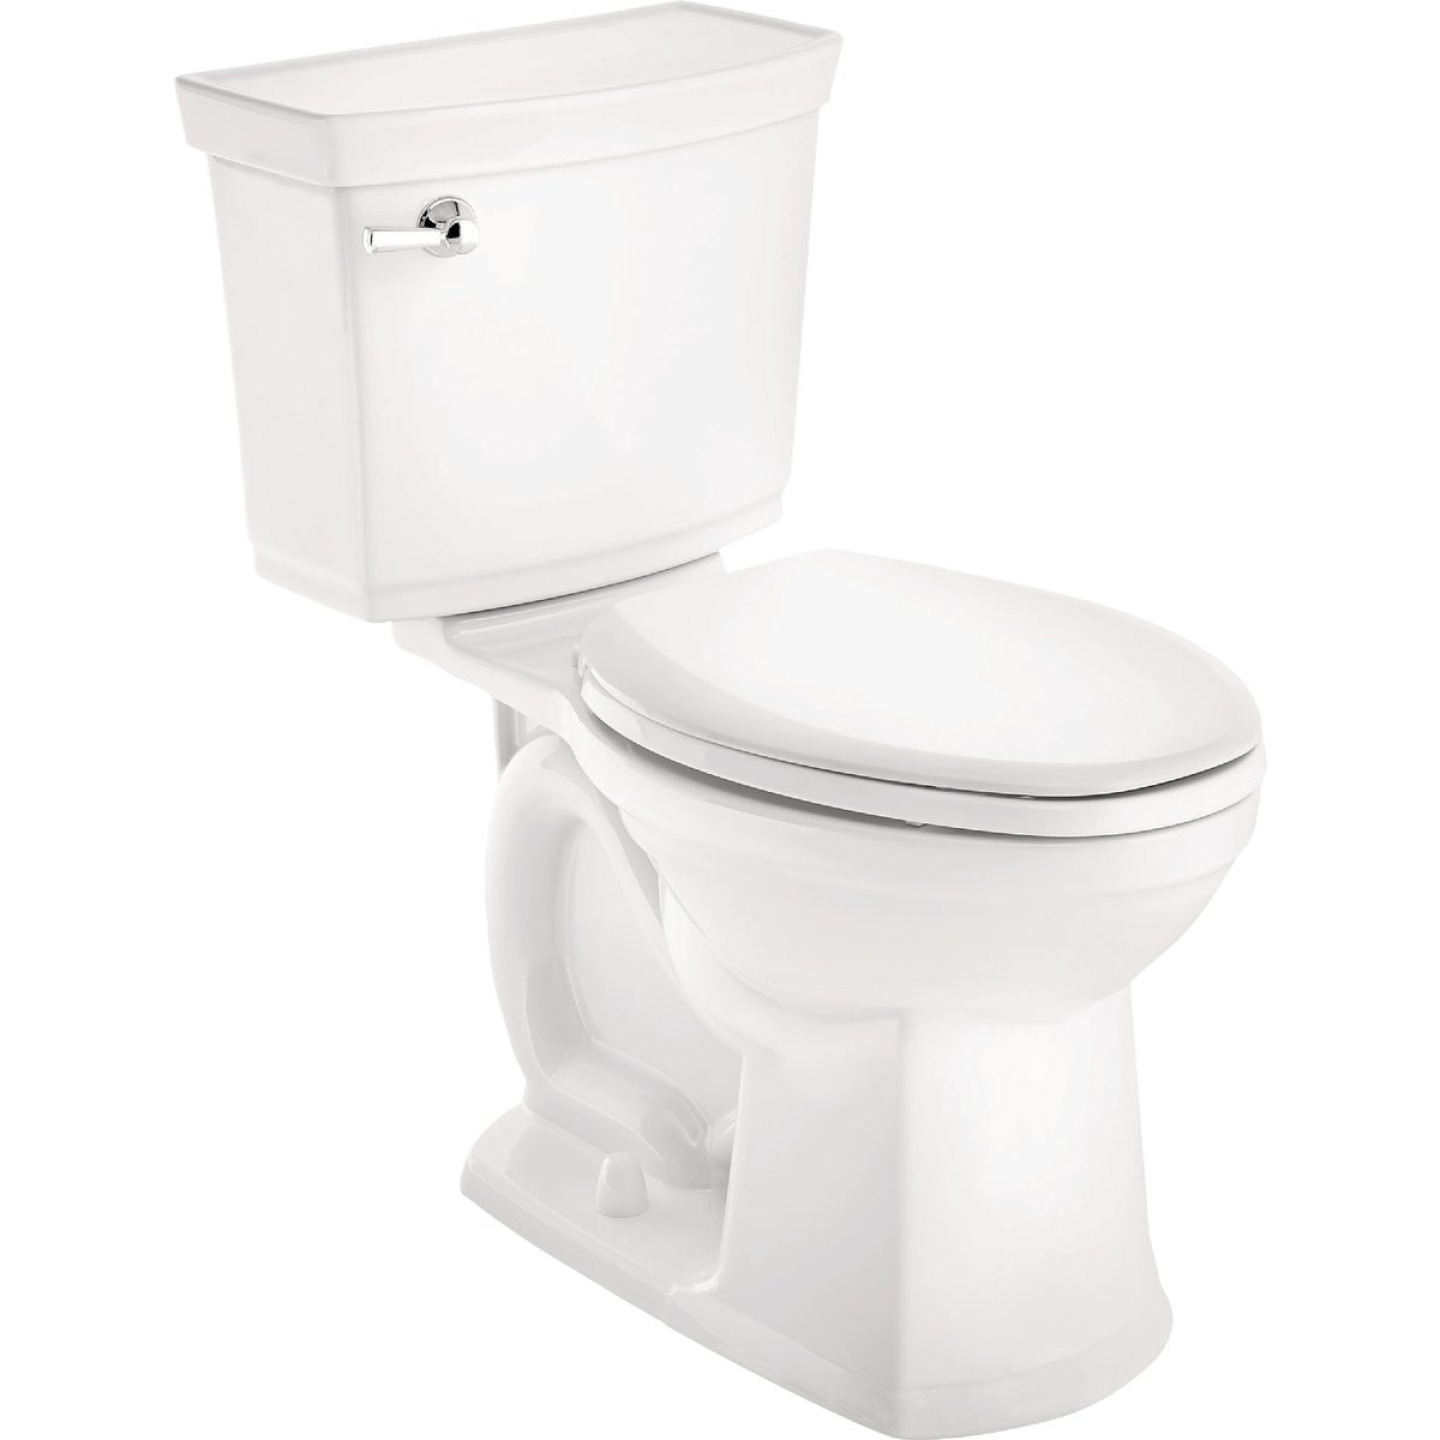 American Standard Astute VorMax Right Height White Elongated Bowl 1.28 GPF Complete Toilet Image 1